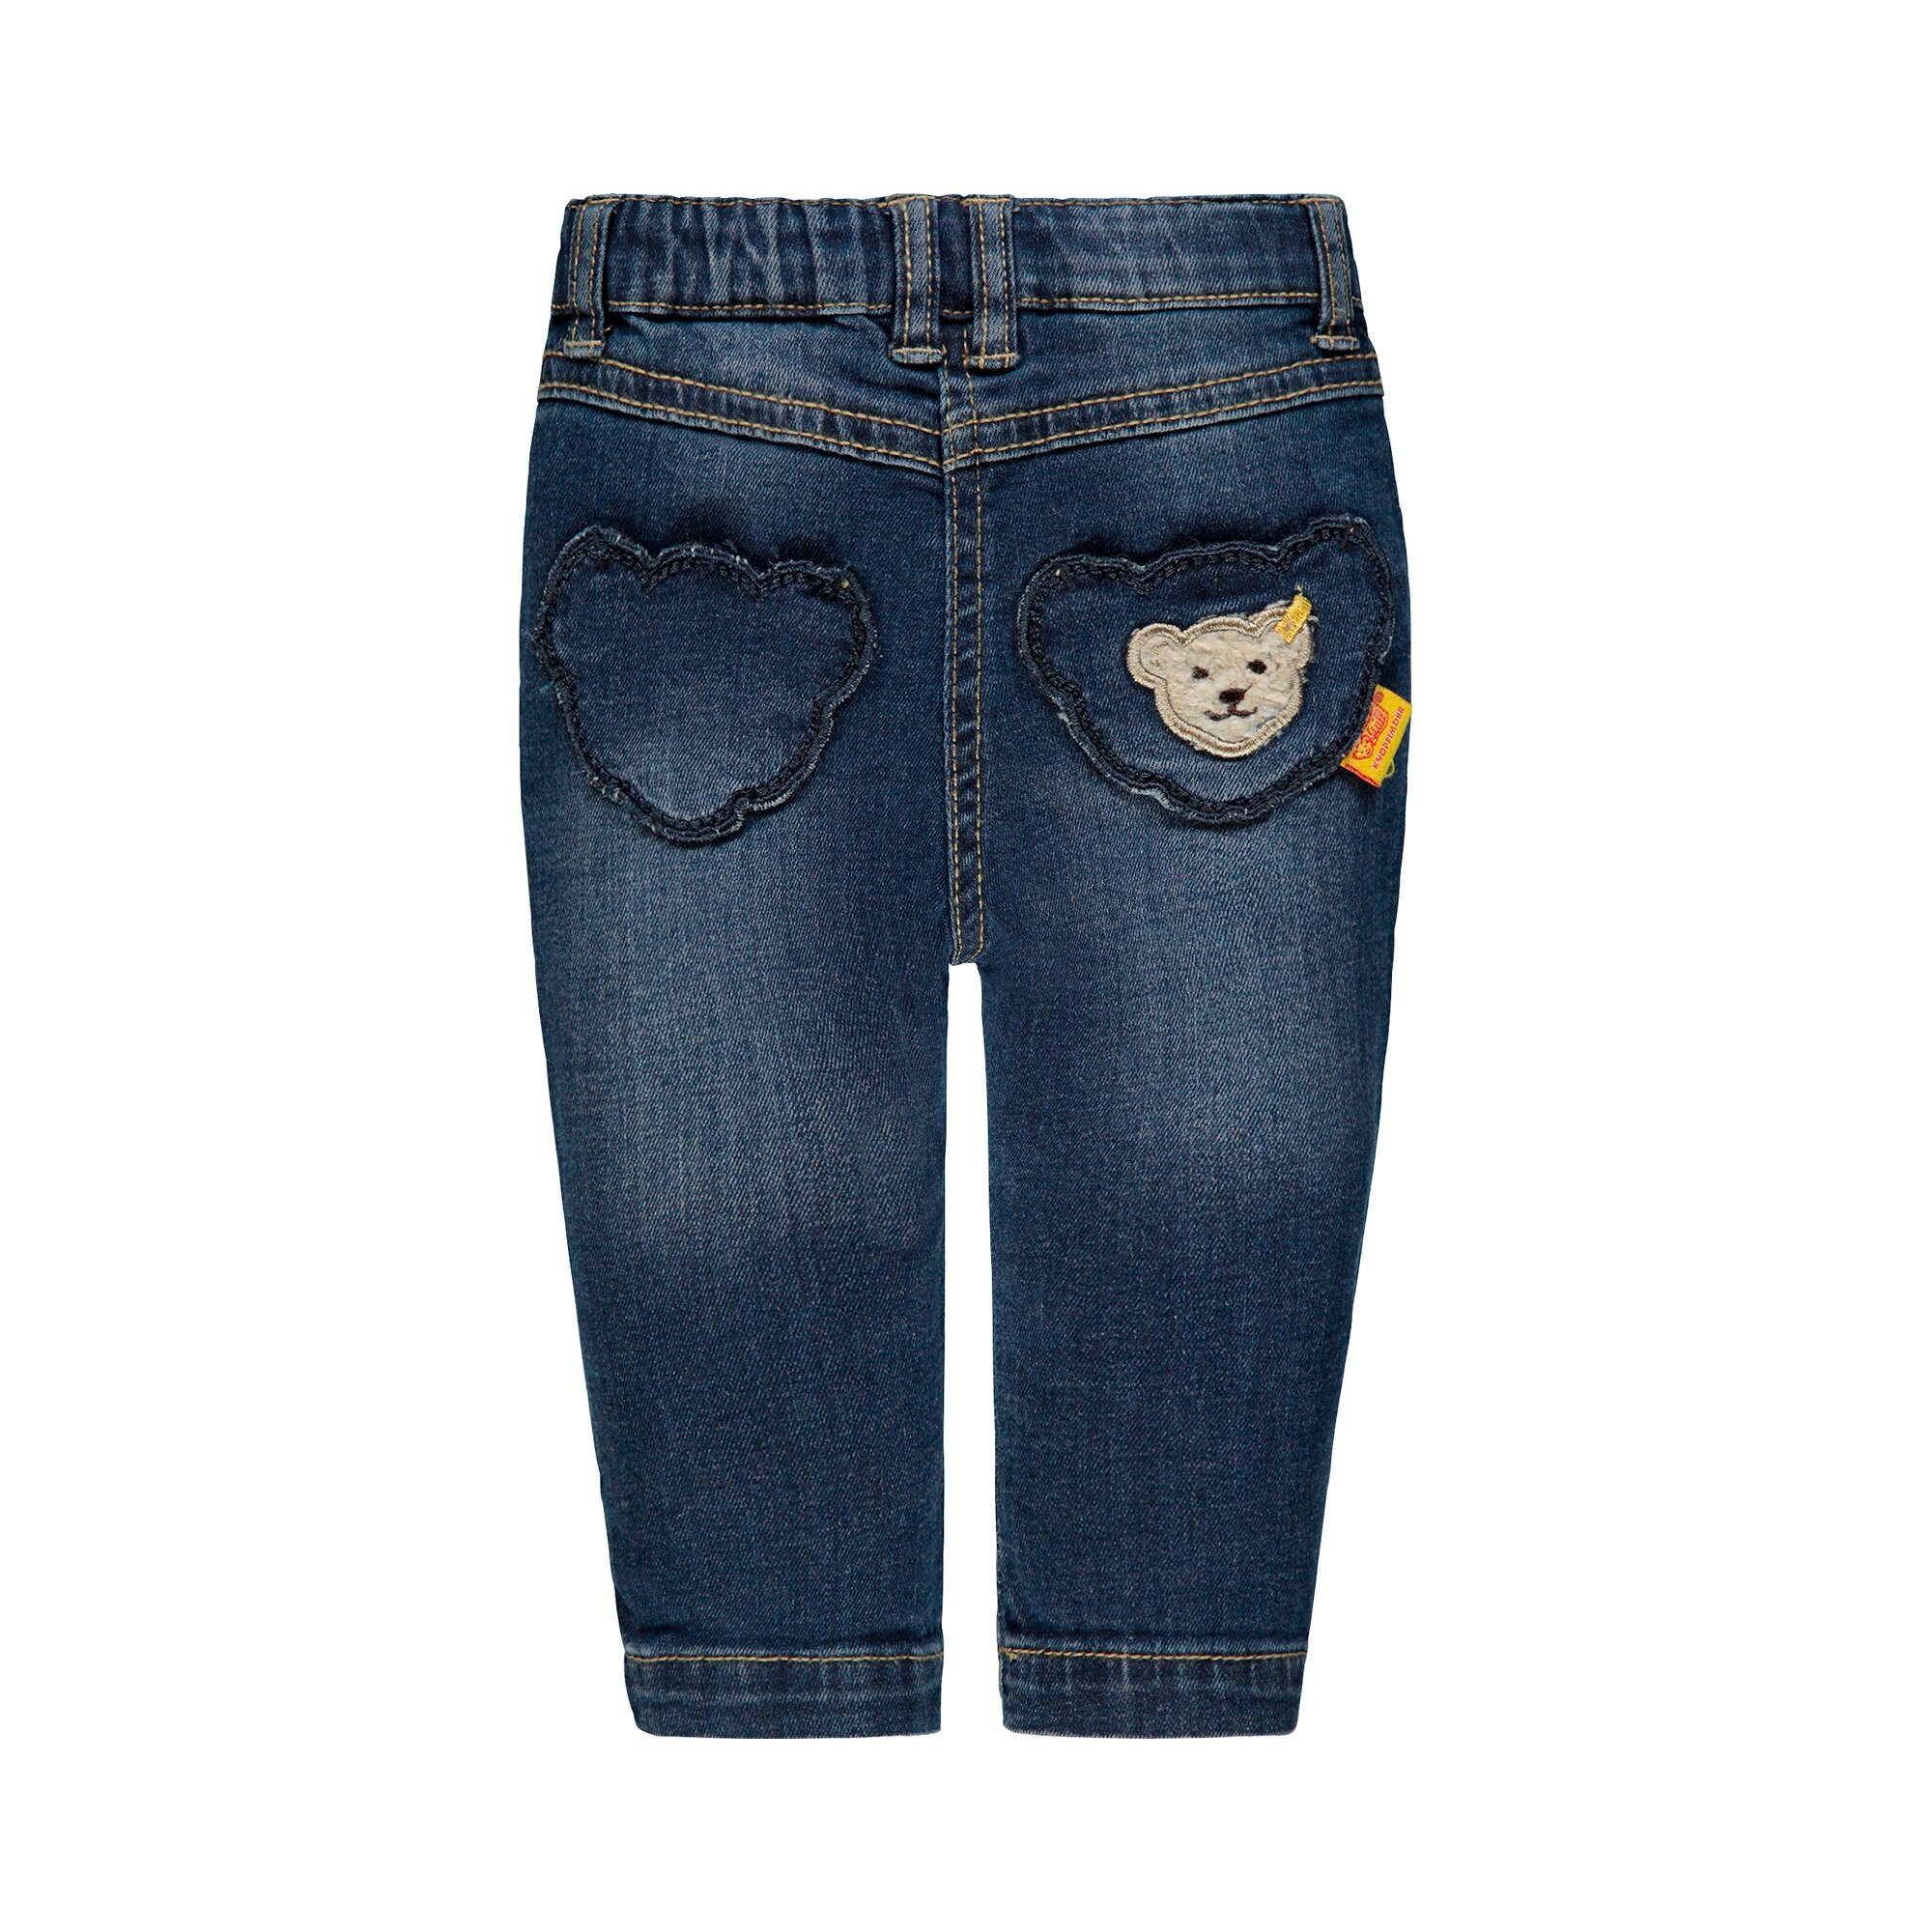 steiff-jeans-5-pocket